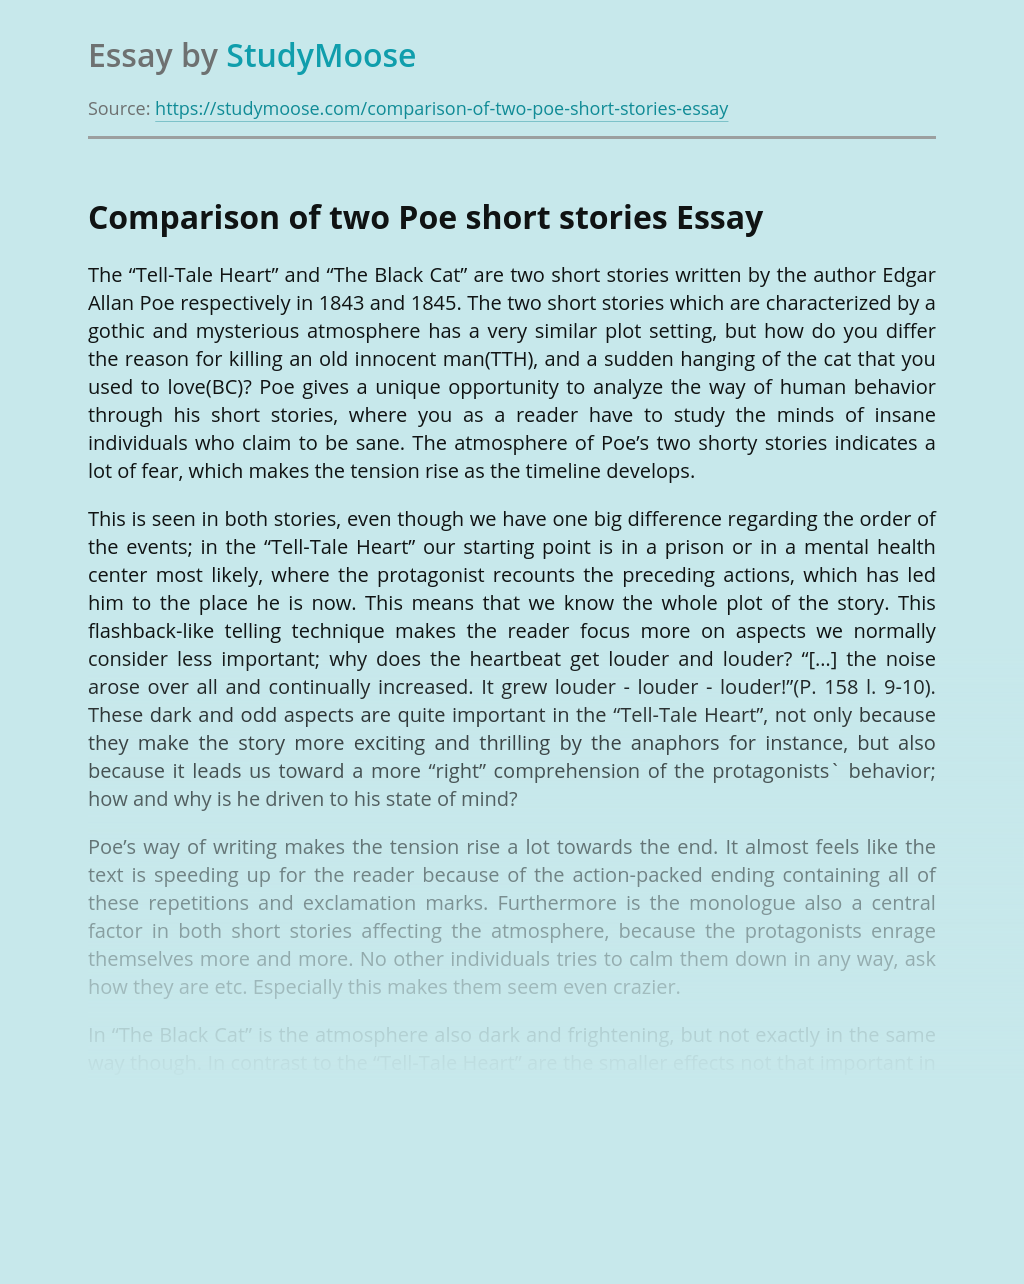 Comparison of Two Poe's Short Stories